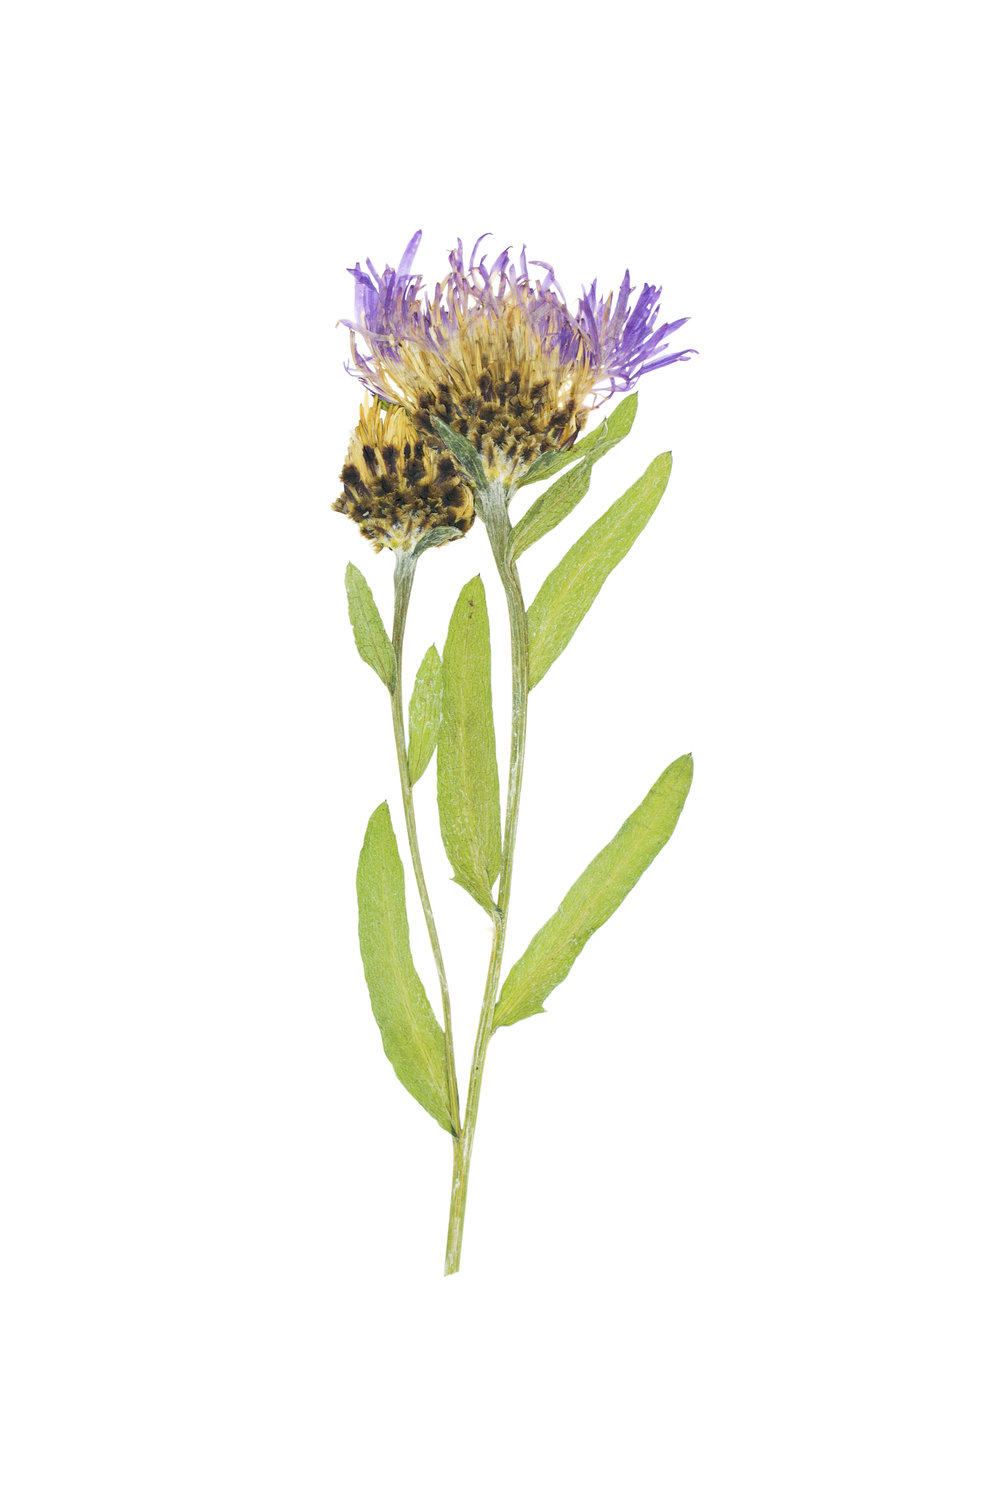 Centaurea jacea / Brownray Knapweed